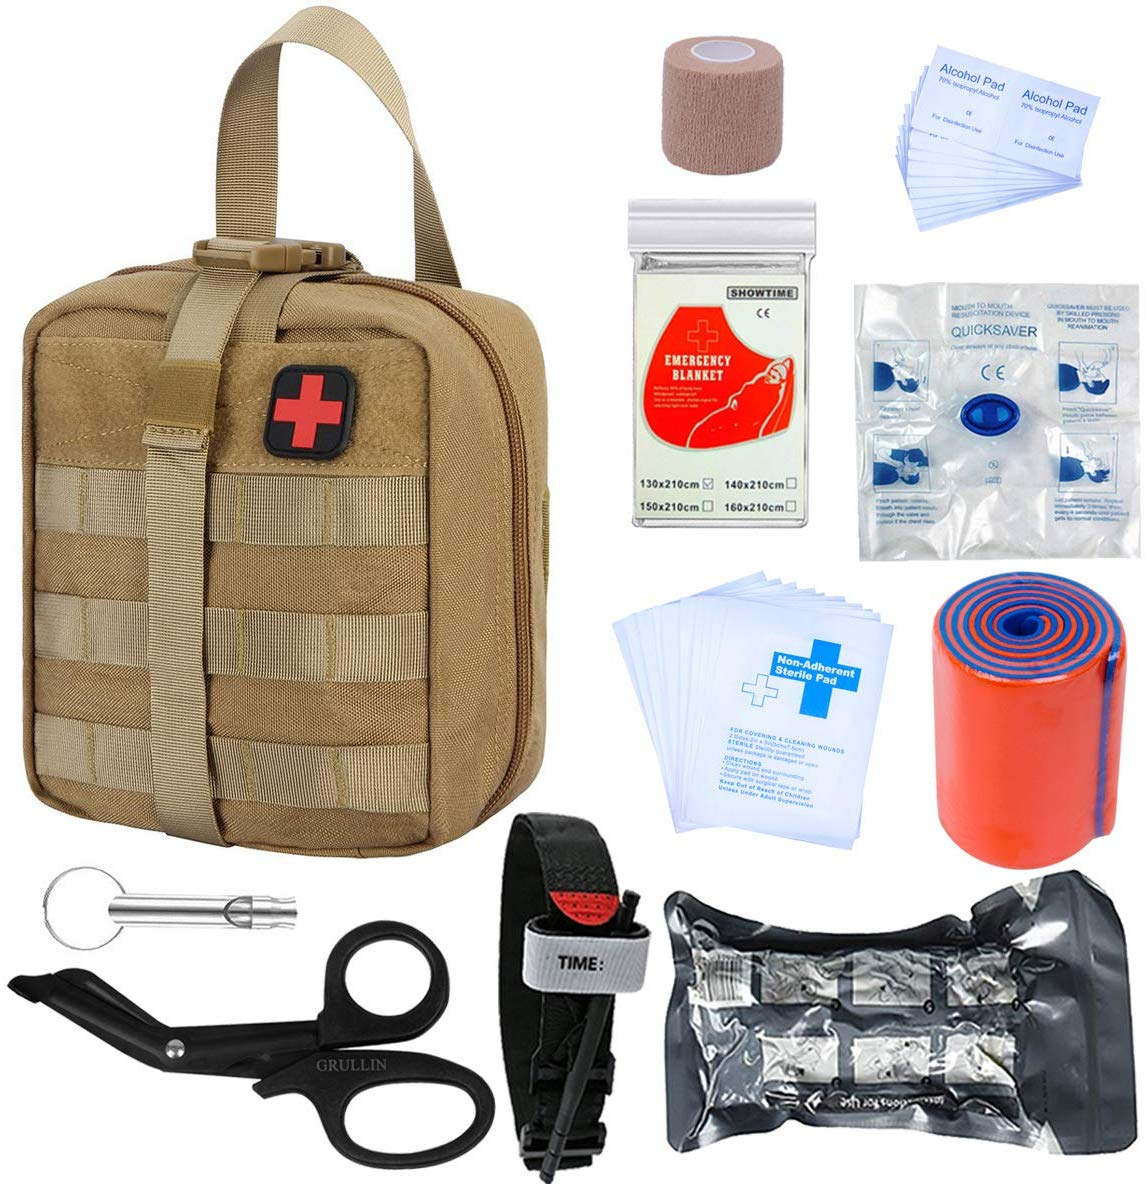 GRULLIN Survival First Aid Kits | Portable Israeli Bandage Tourniquet Splint Roll EMT Scissors Survival Bag, Practical Professional First Aid Kits for Outdoor,Room, car